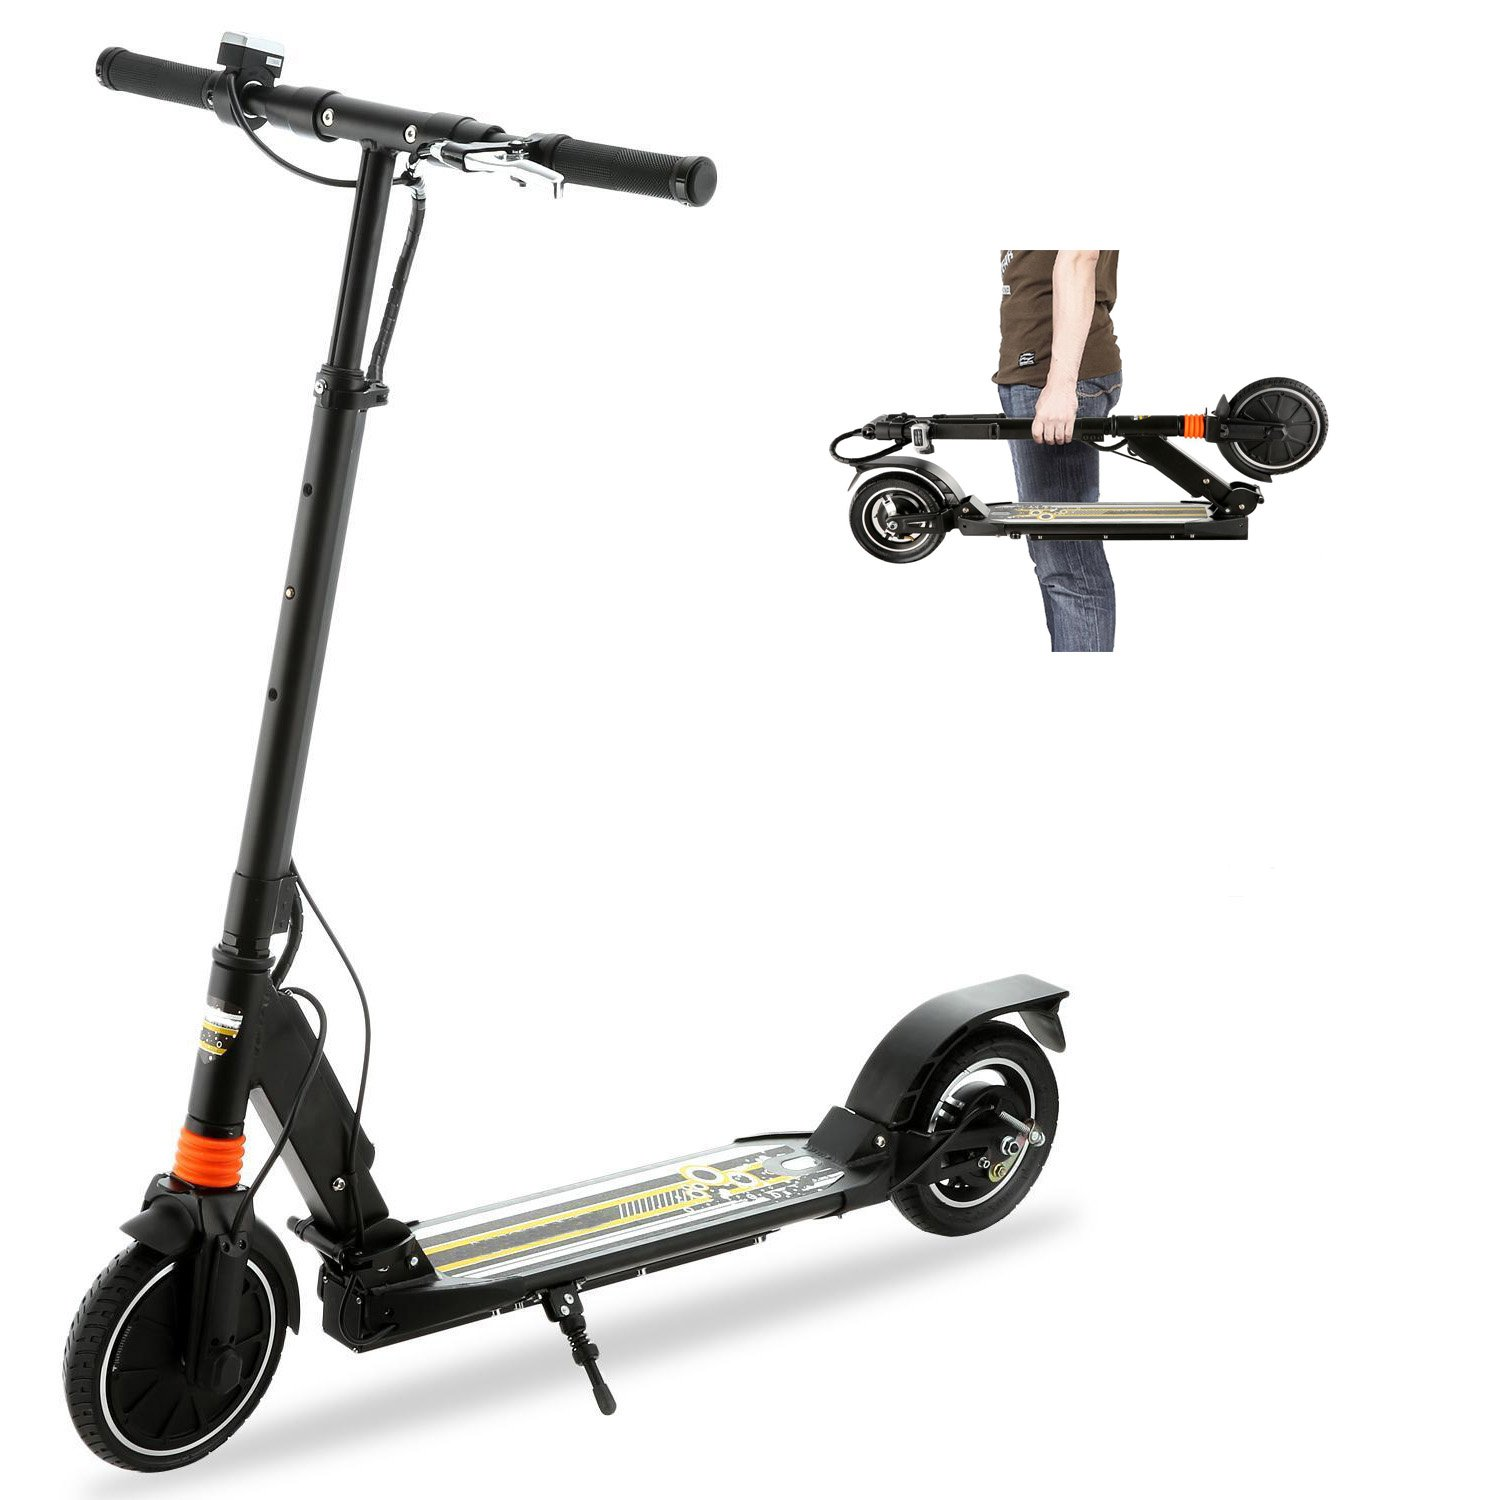 Foldable Lightweight Adult Electric Kick Scooter/Bike with Dual Suspension, 36V/ 5AH 250W Brushless Motor 12+ MPH (20km/h) & Front EABS & Rear Drum Brake--Up to 220 Lbs[US STOCK]